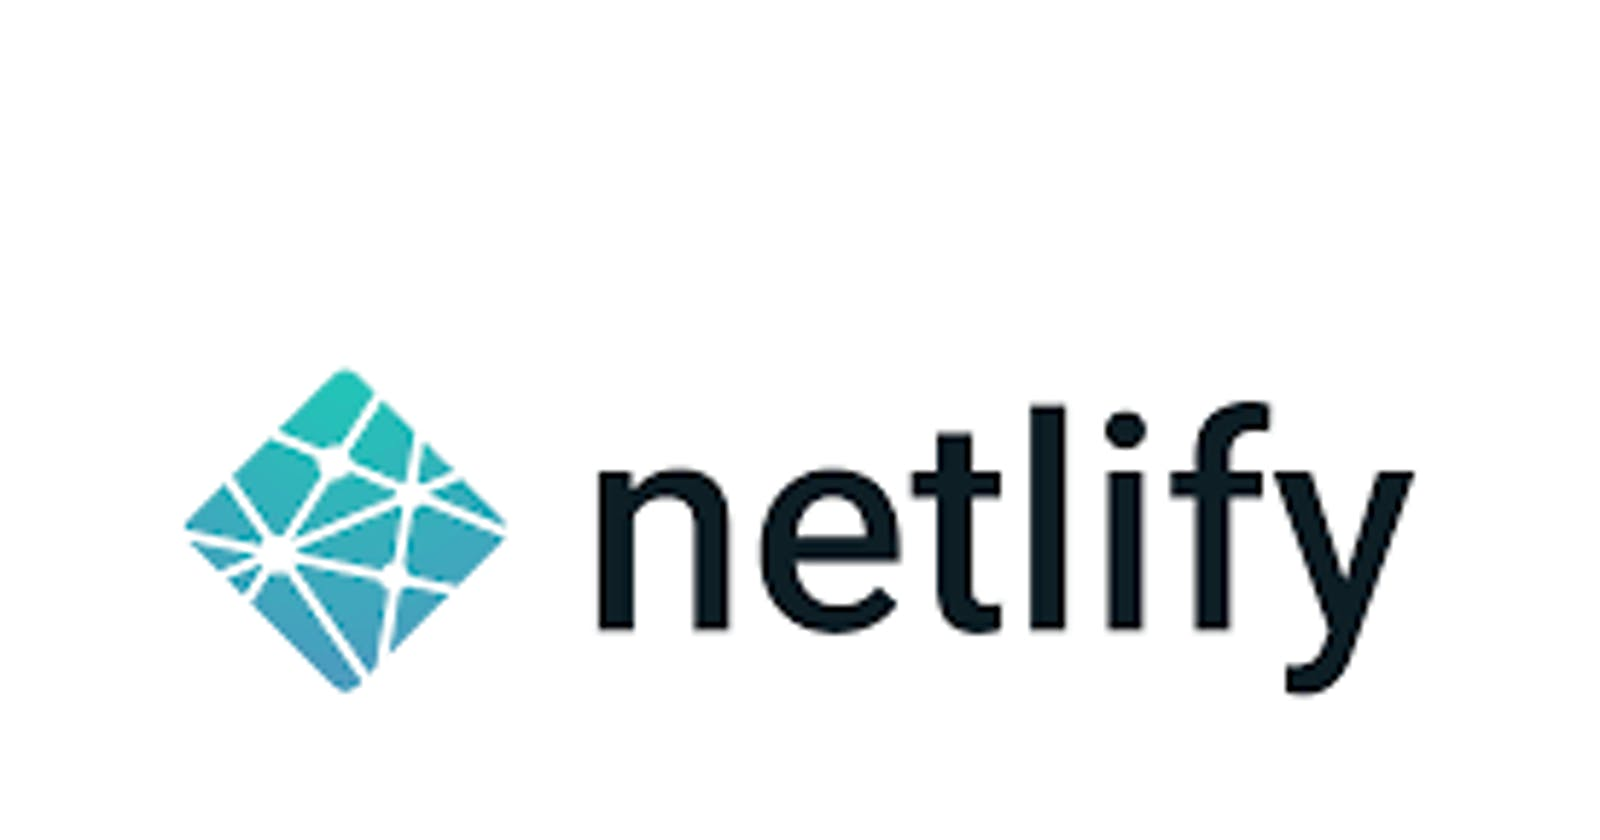 Host a site on Netlify in less than 5 mins